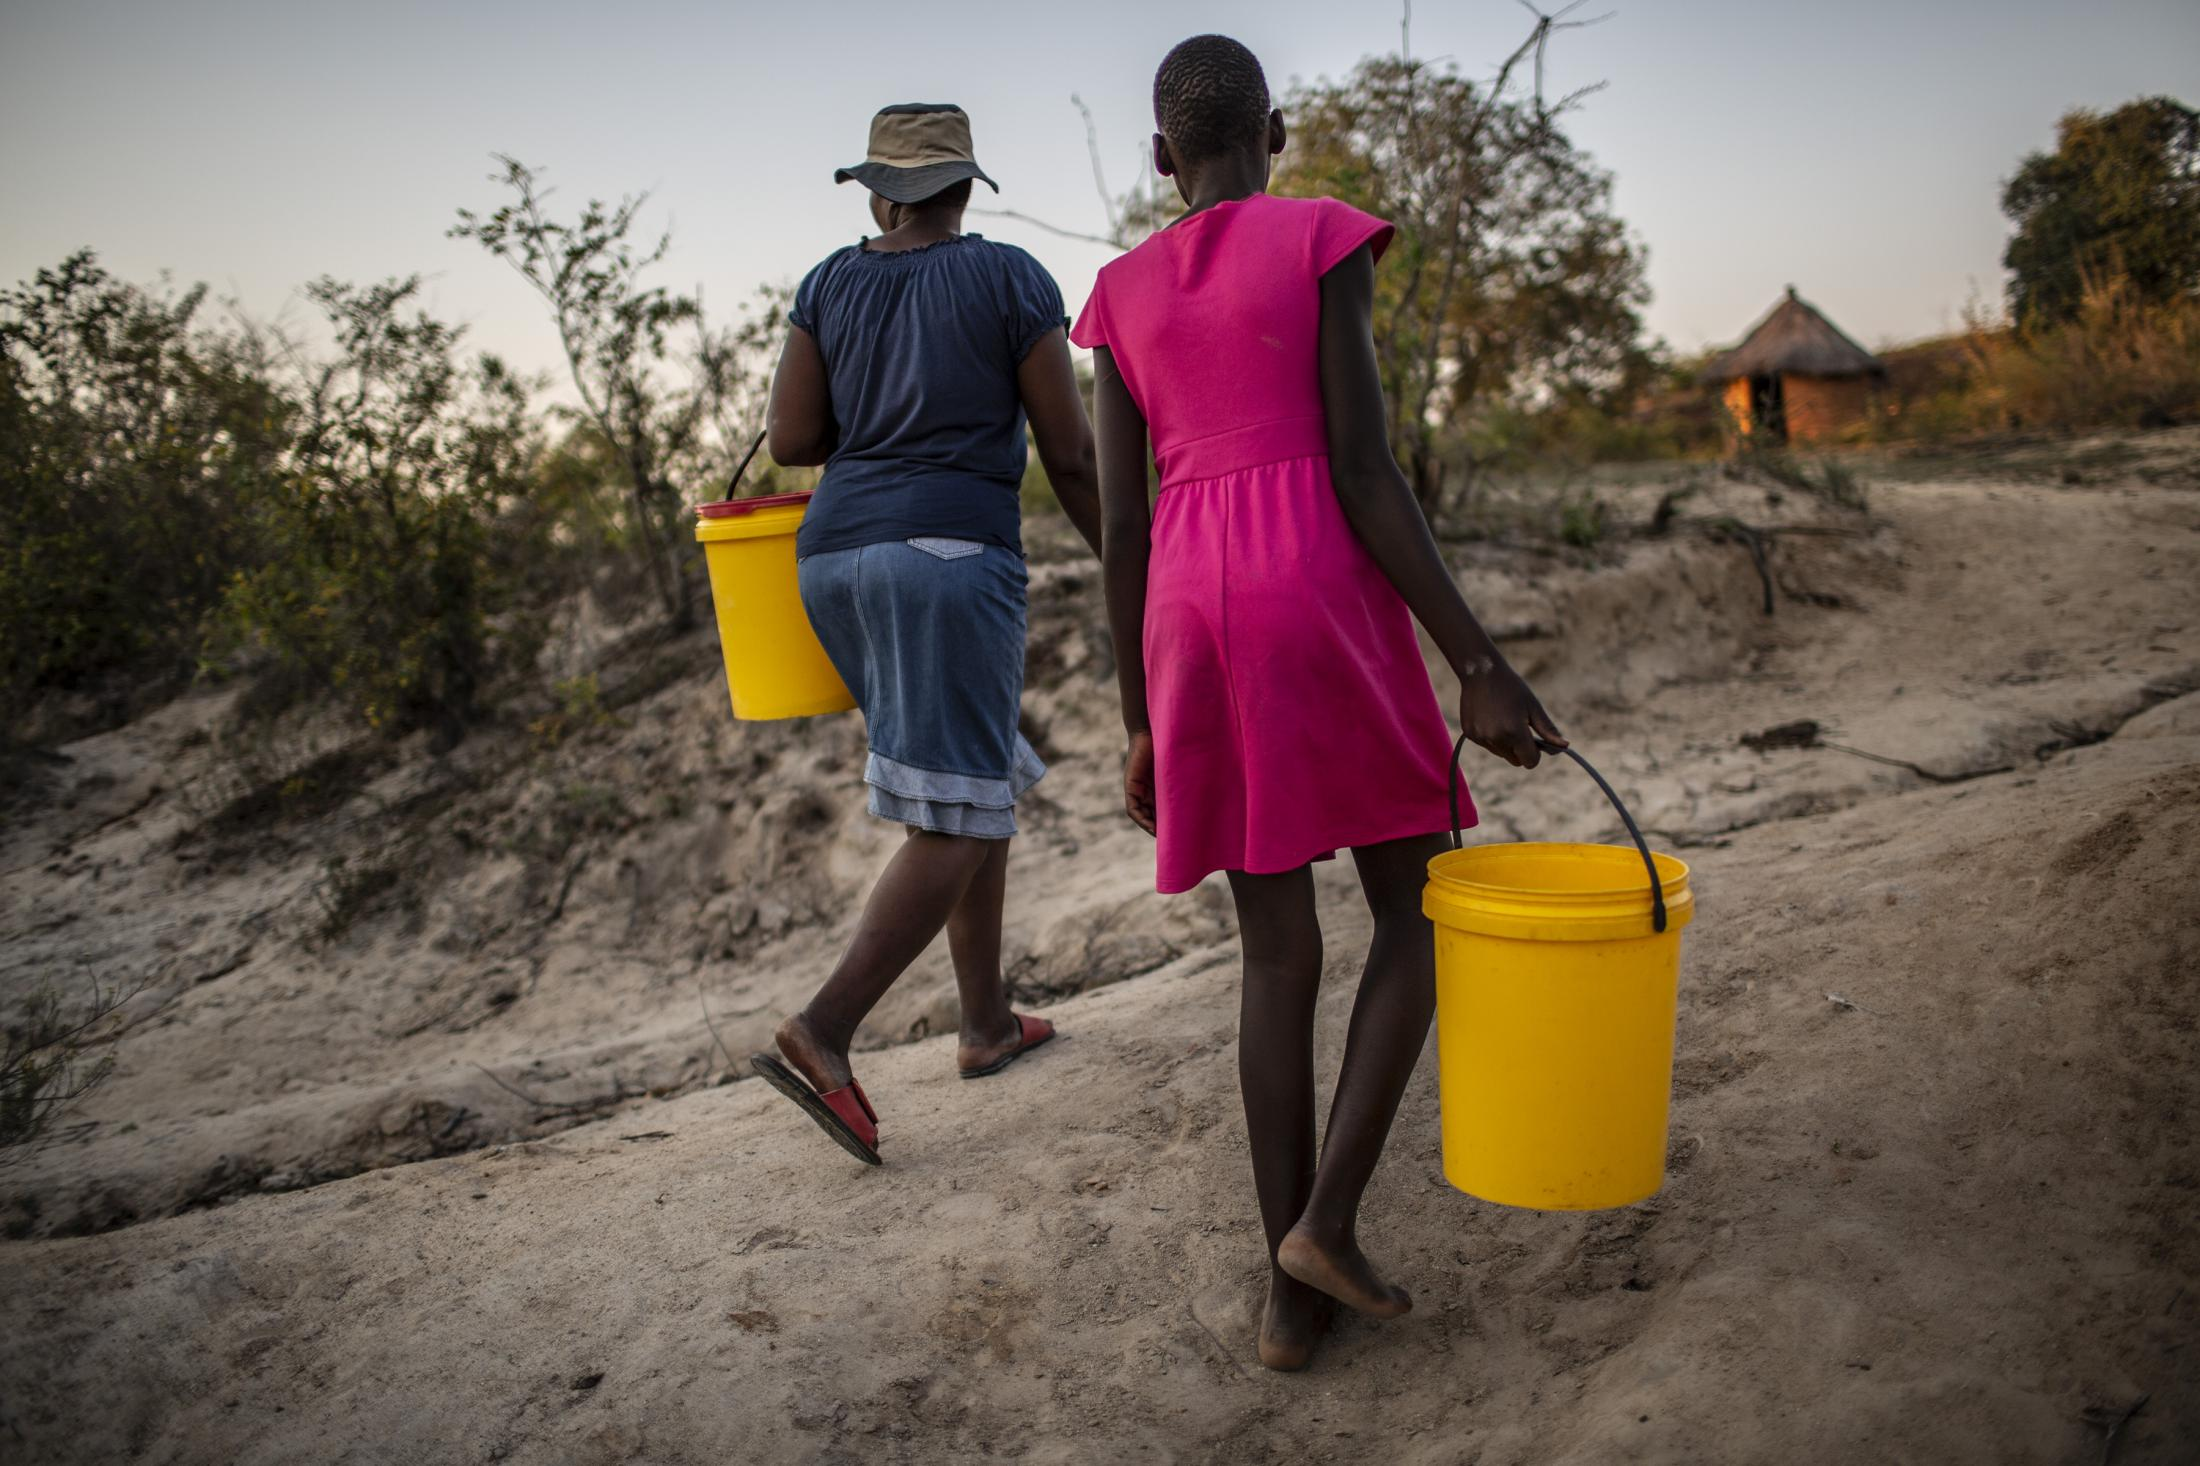 Tariro Chinamo (43) (R), walks with her daughter, Lana Fariva (14) to fetch water in Masvingo, Zimbabwe on October 07, 2019. The family has no electricity or water at home and have to walk for over a km to a spring to fetch water everyday. They have no choice but to use this for drinking and cooking as well, so it will be boiled.